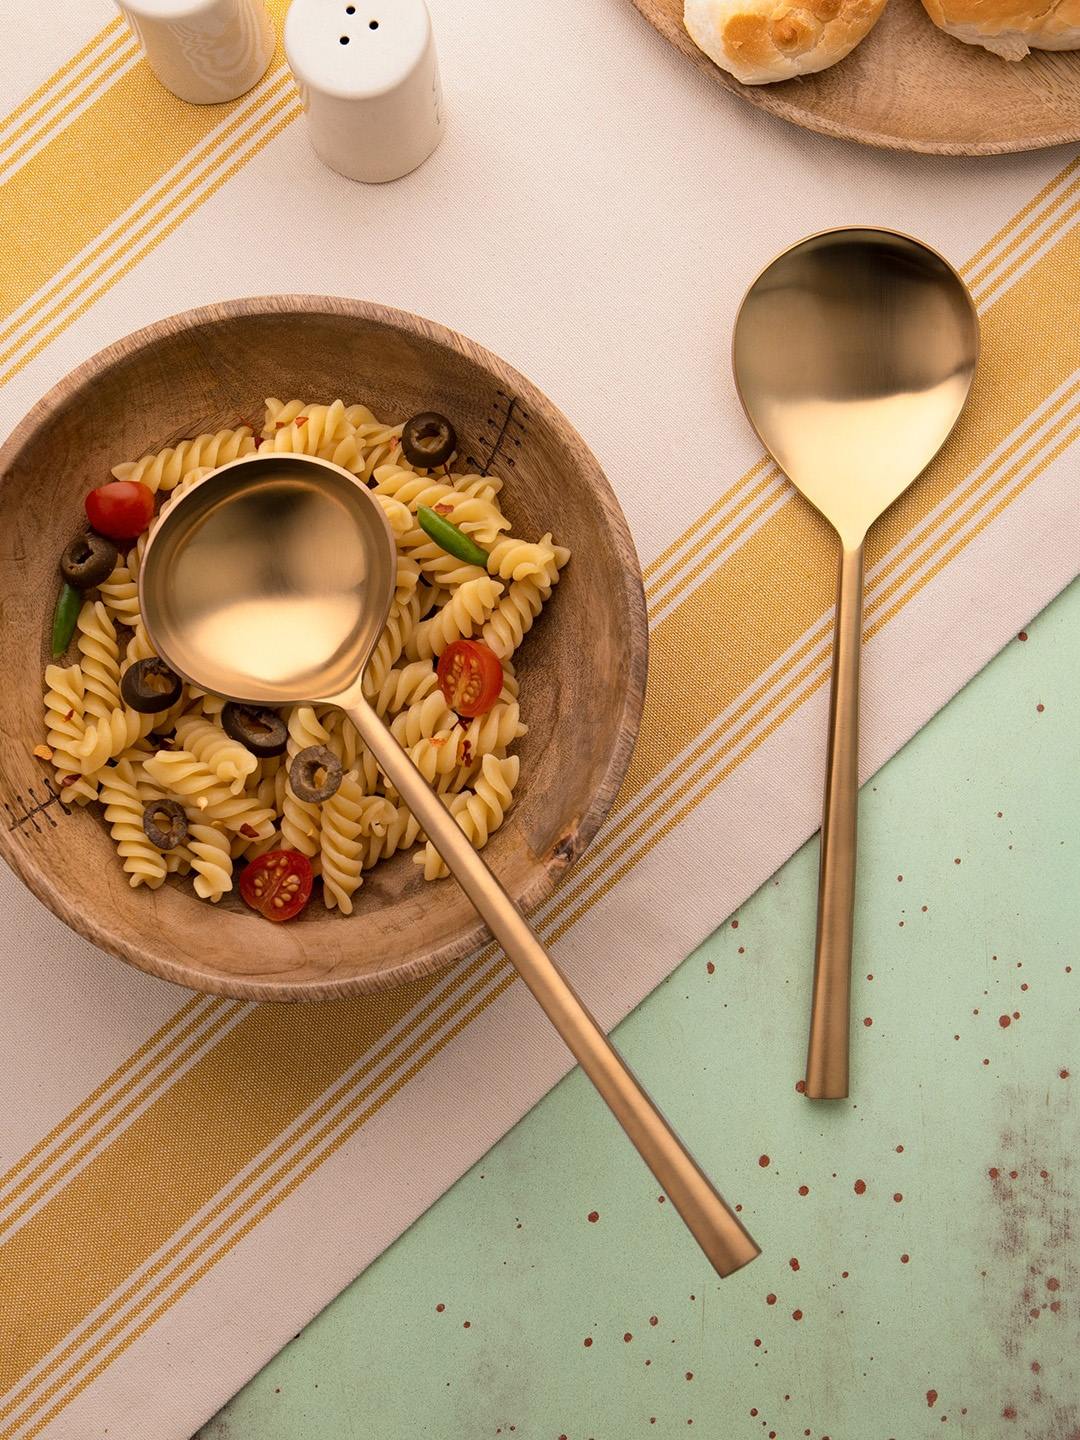 ellementry Set of 2 Gold Toned Stainless Steel Serving Spoons